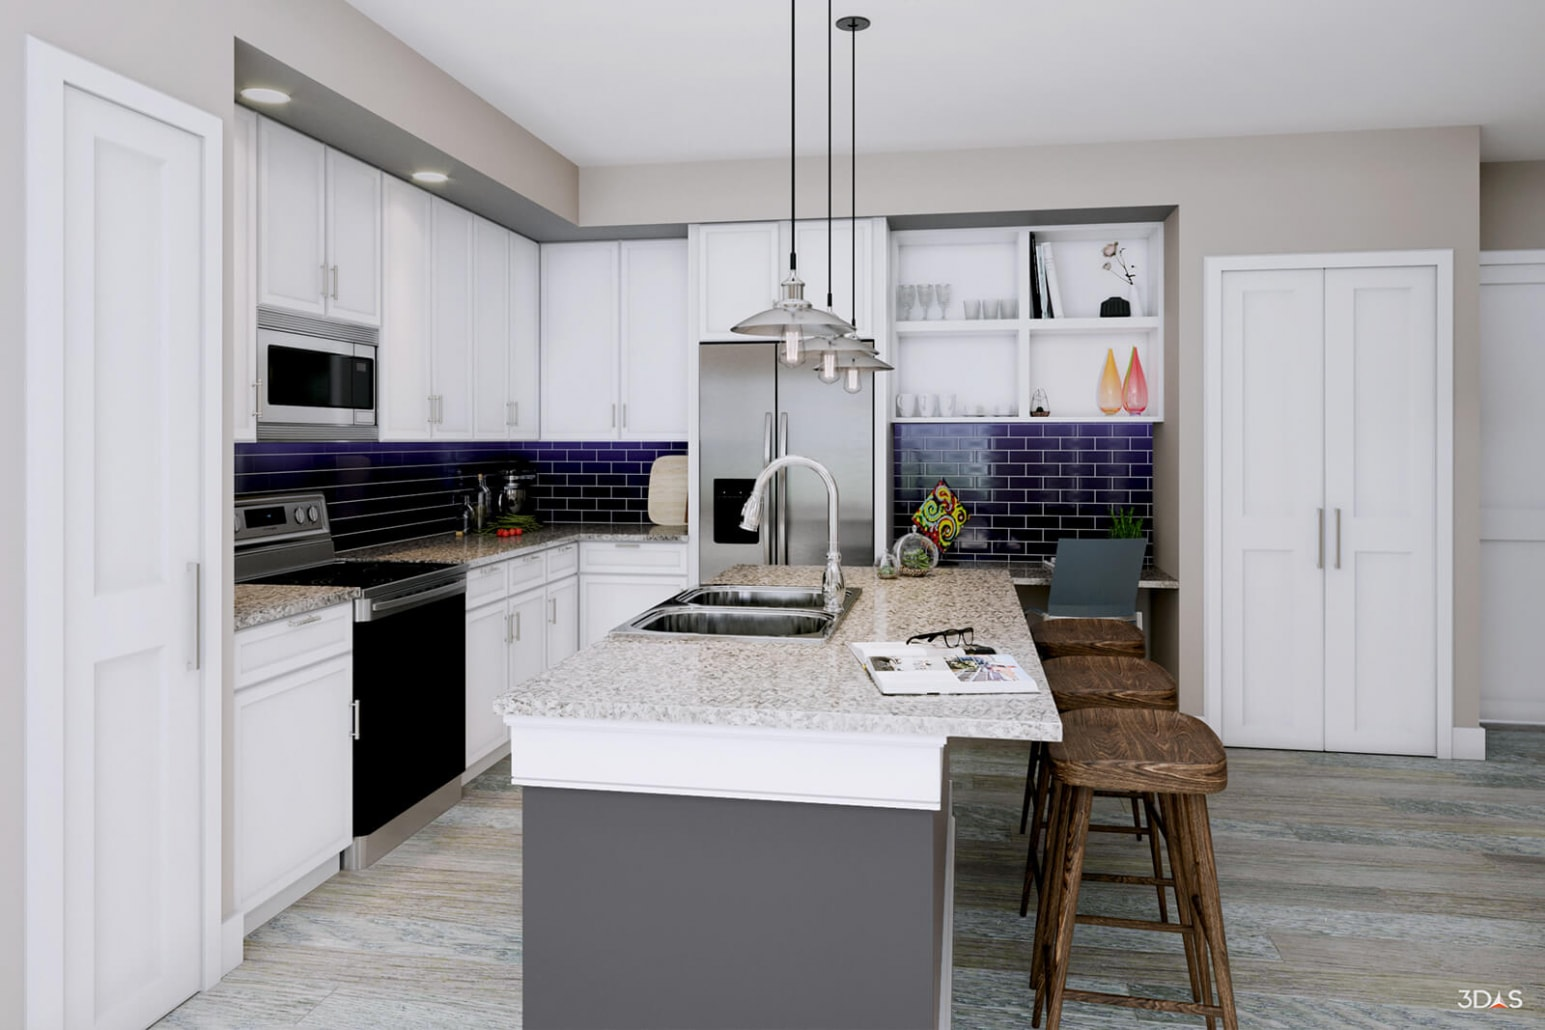 Floridian Kitchen Version C. 3D rendering for testing backsplash, counter tops, chairs, accessories, flooring, and cabinetry.